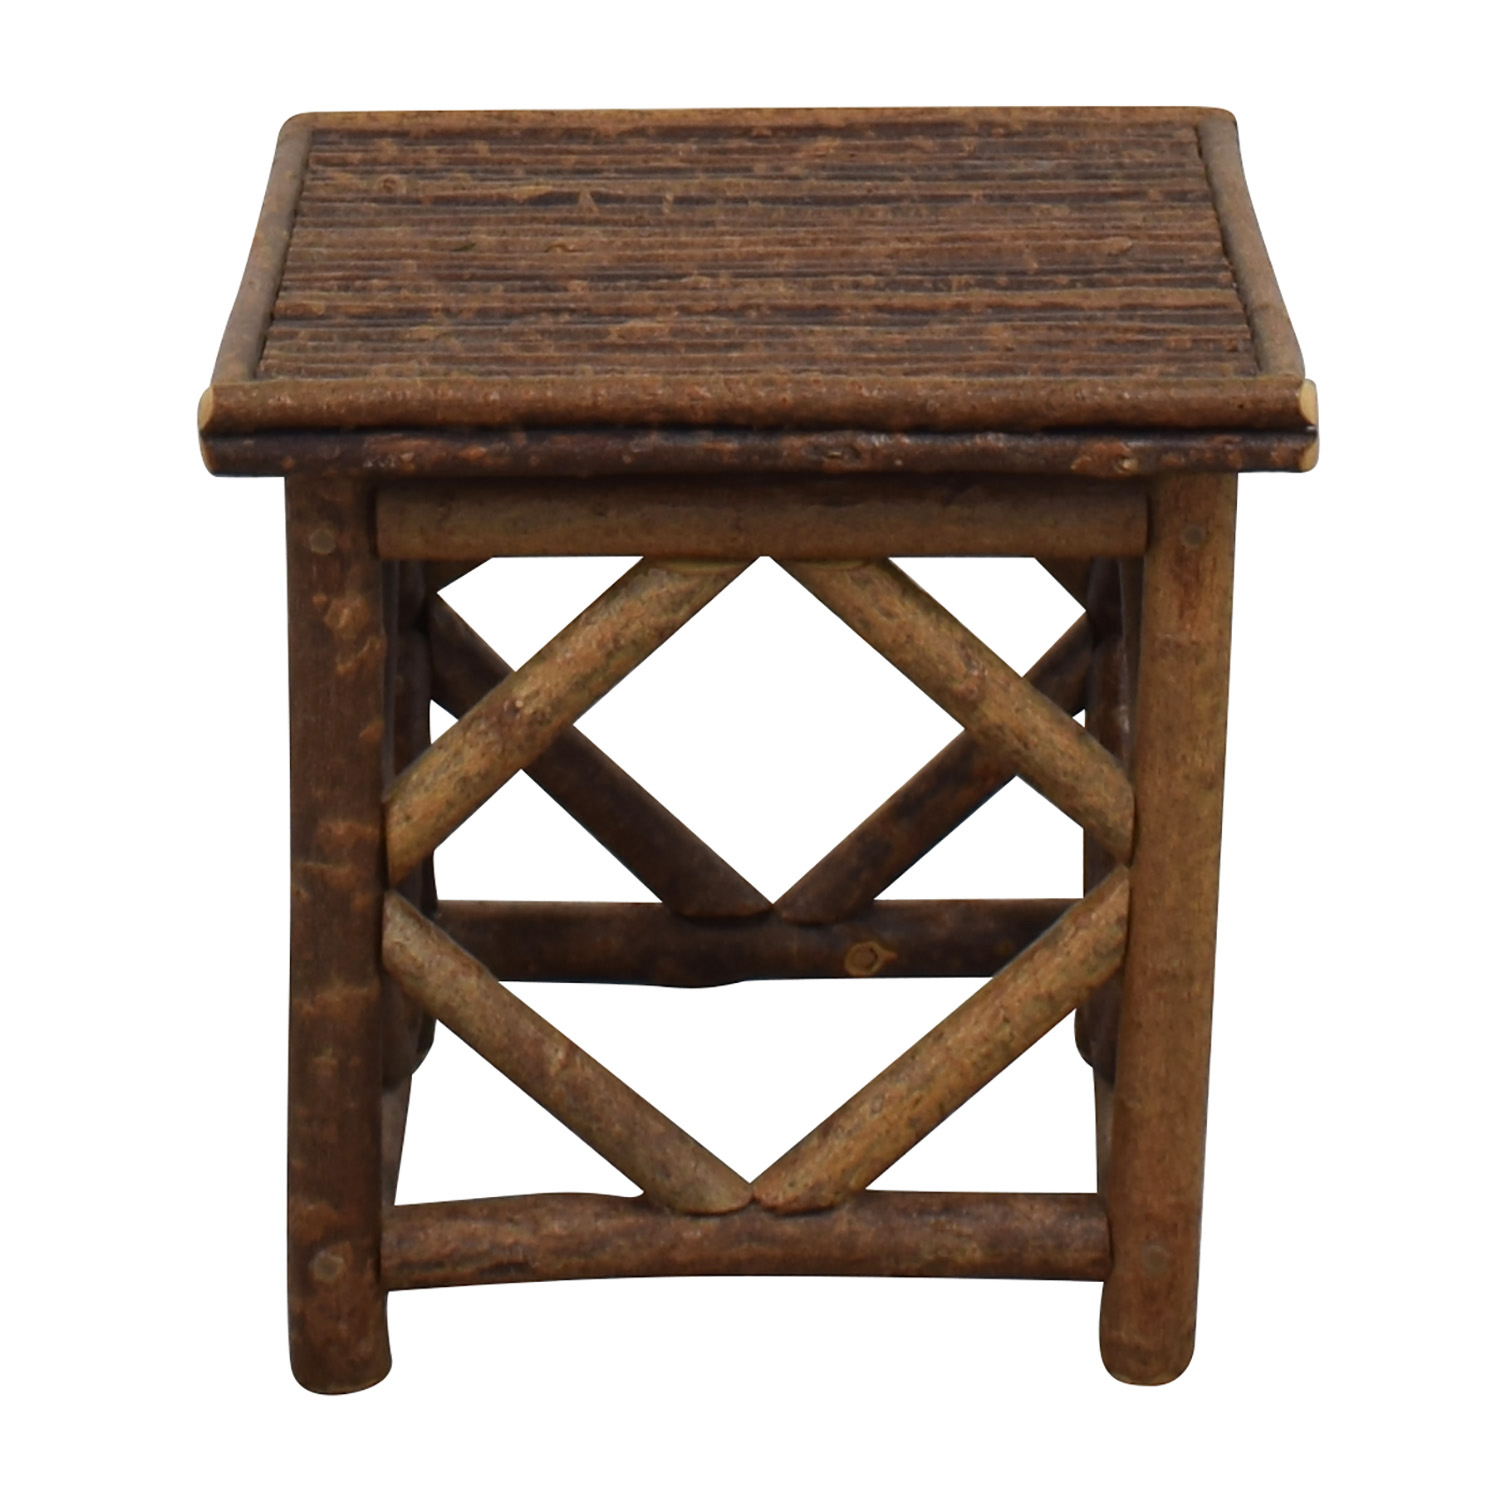 La Lune Collection Rustic End Table used